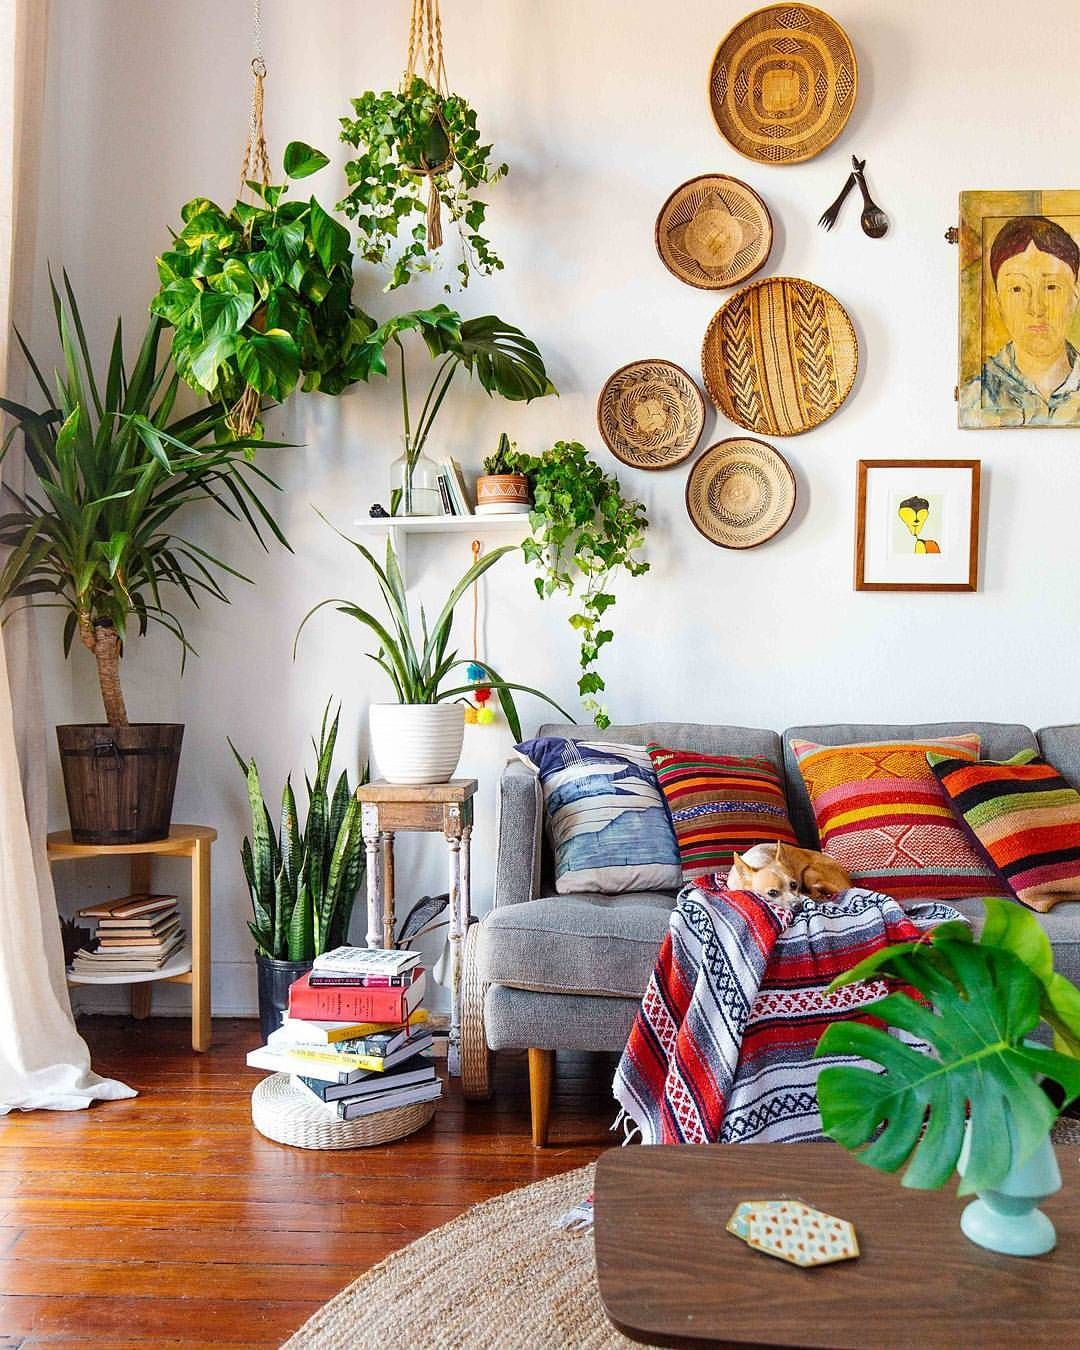 Colorful Eclectic Boho Living Room With Plants Pillows Rugs